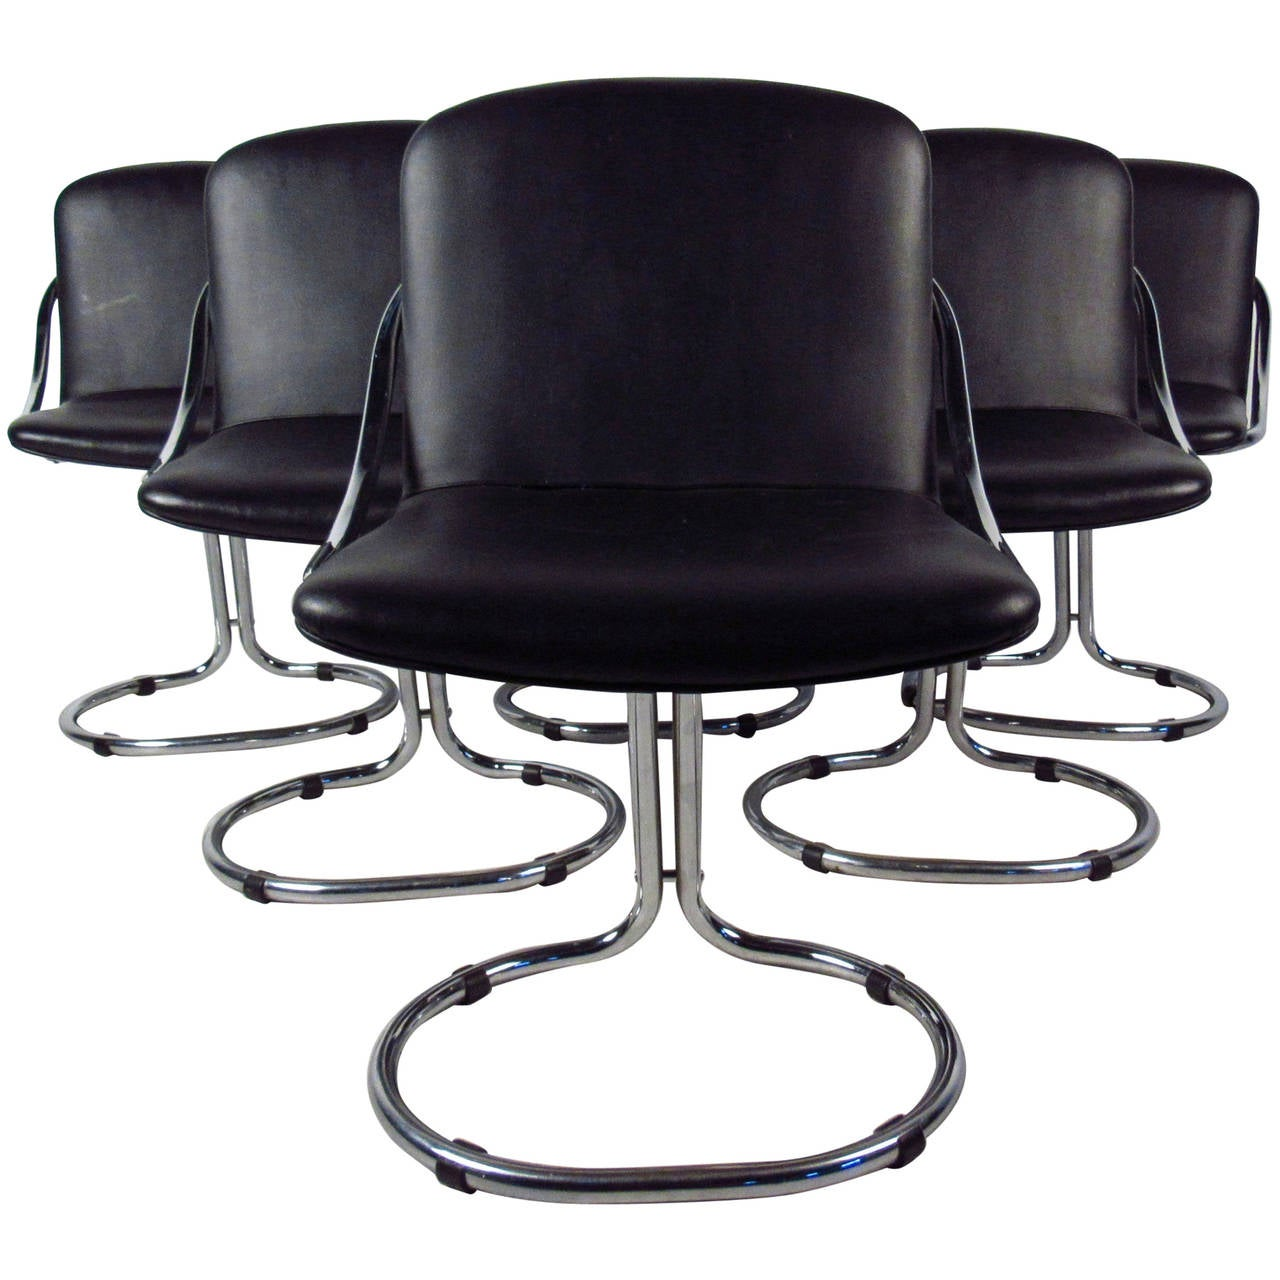 Modern chrome and vinyl dining chairs for sale at 1stdibs for Modern chrome dining chairs